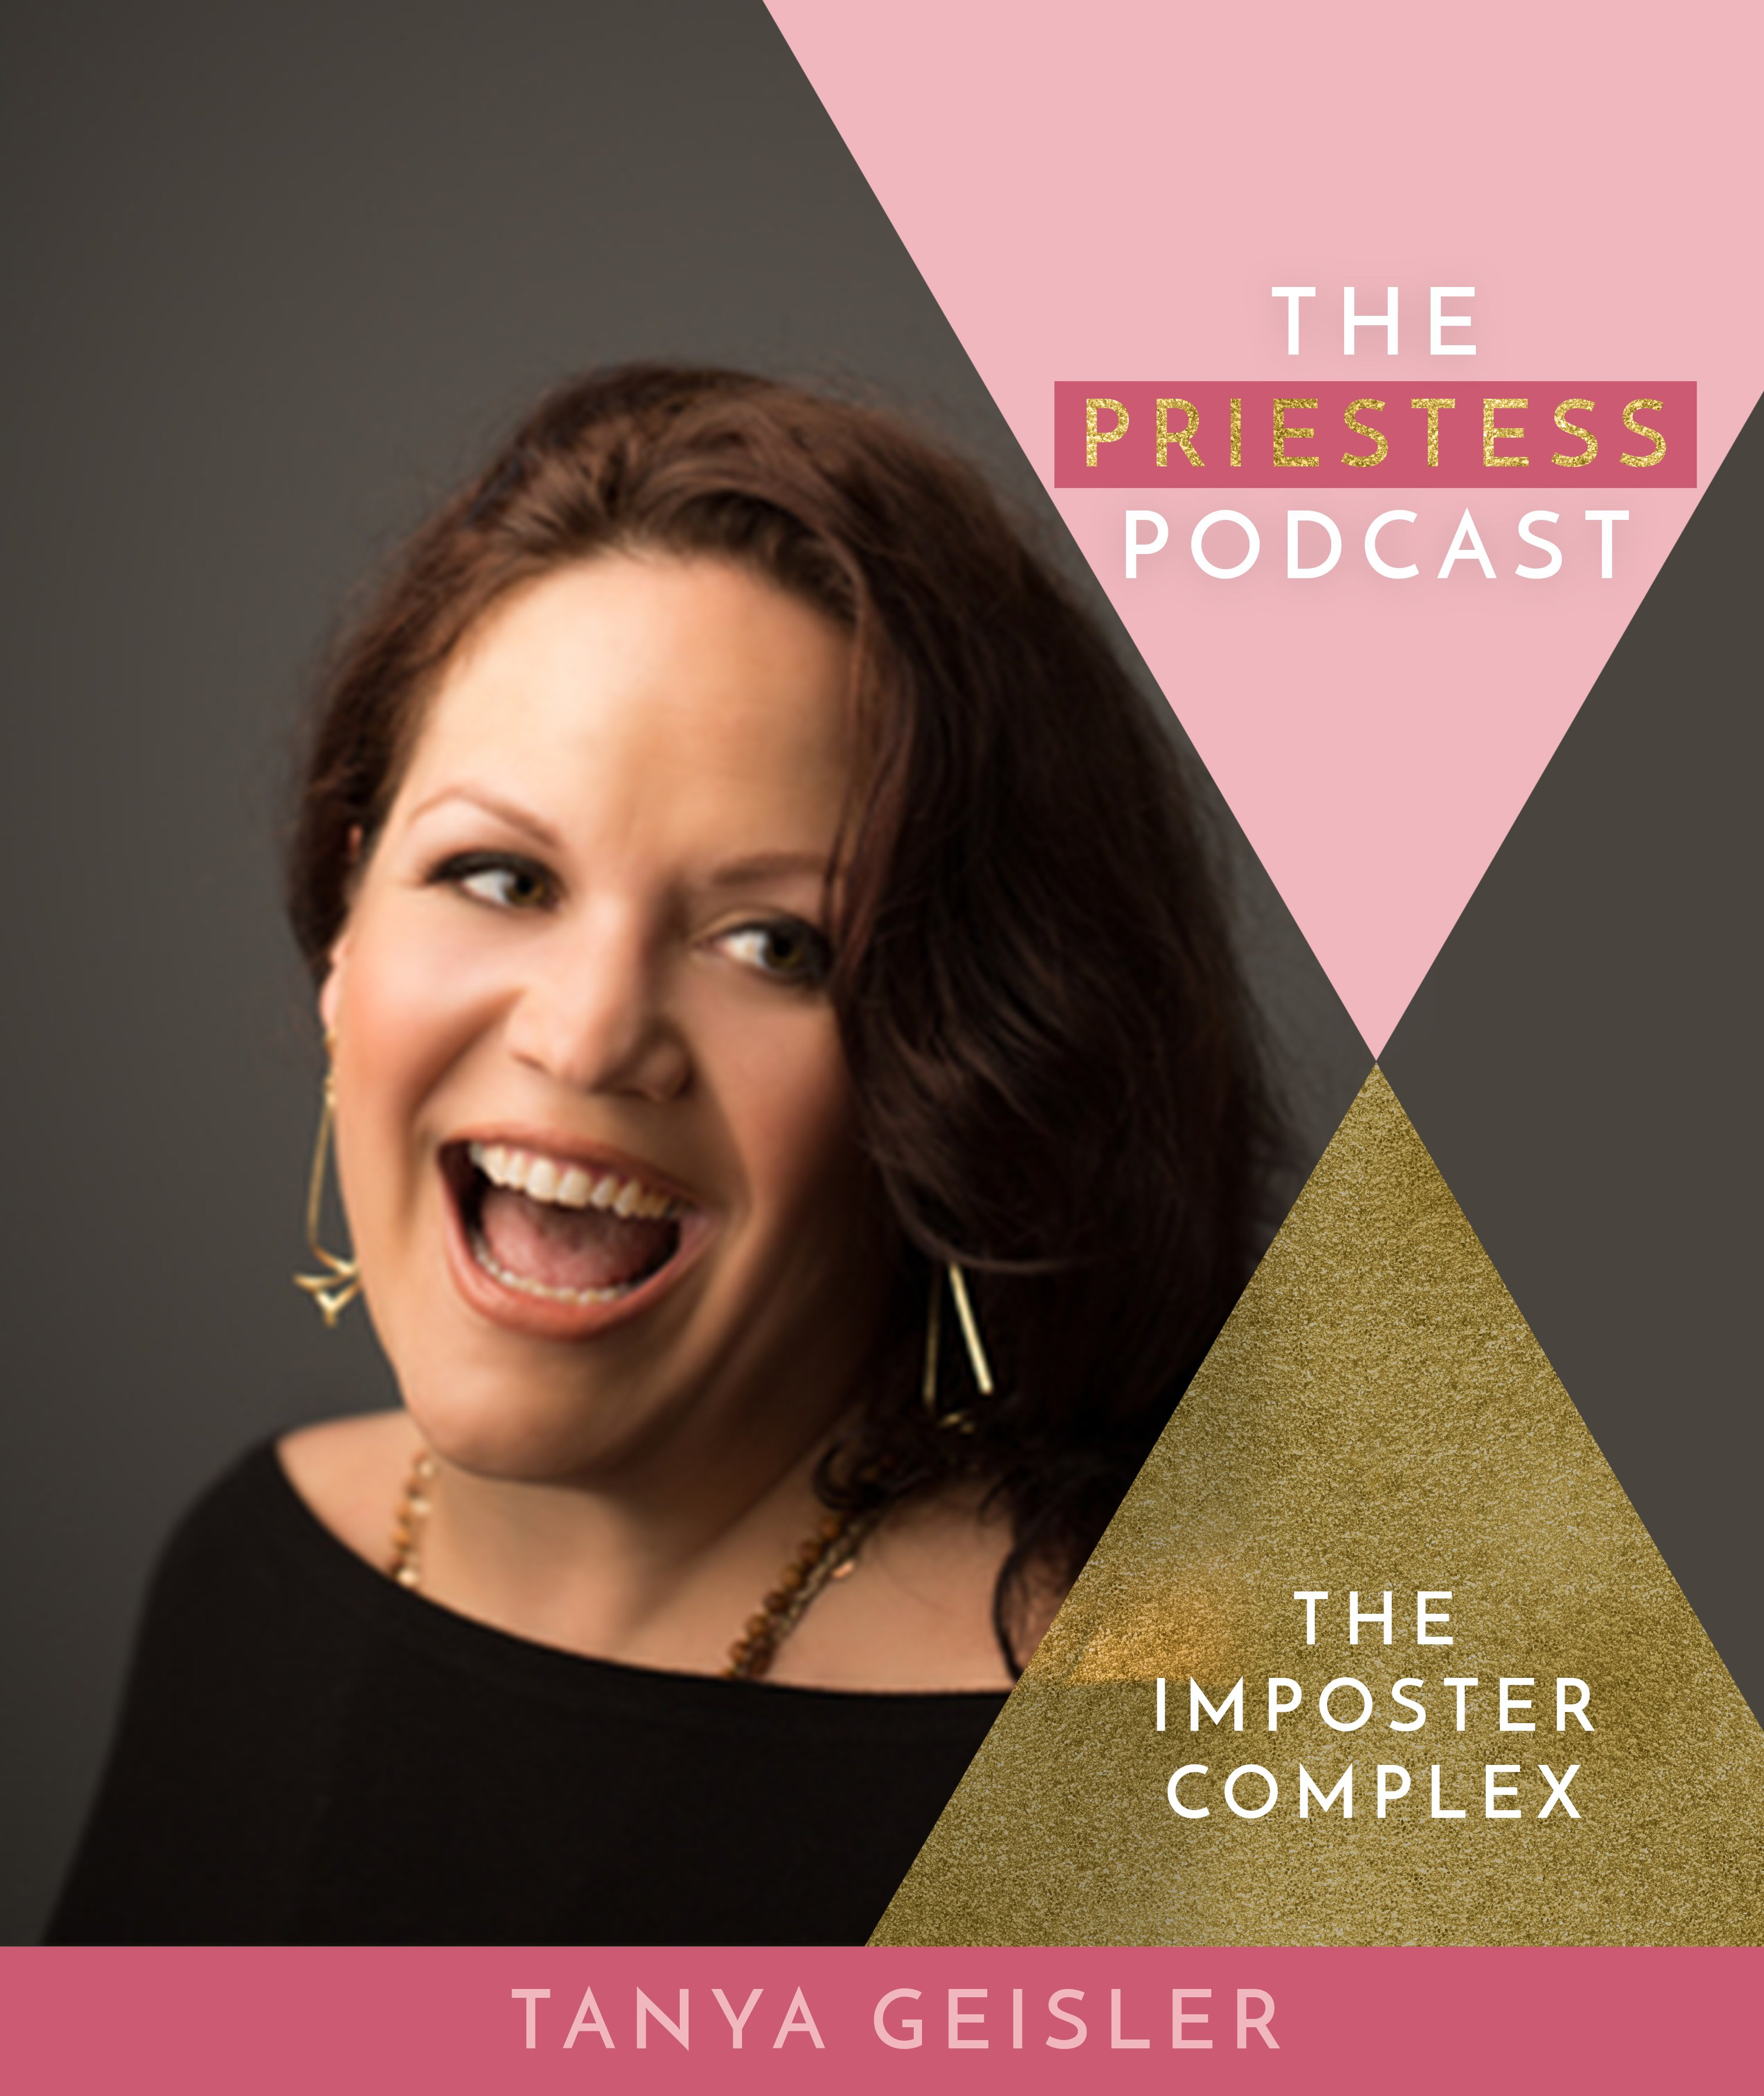 Tanya Geisler on The Imposter Complex